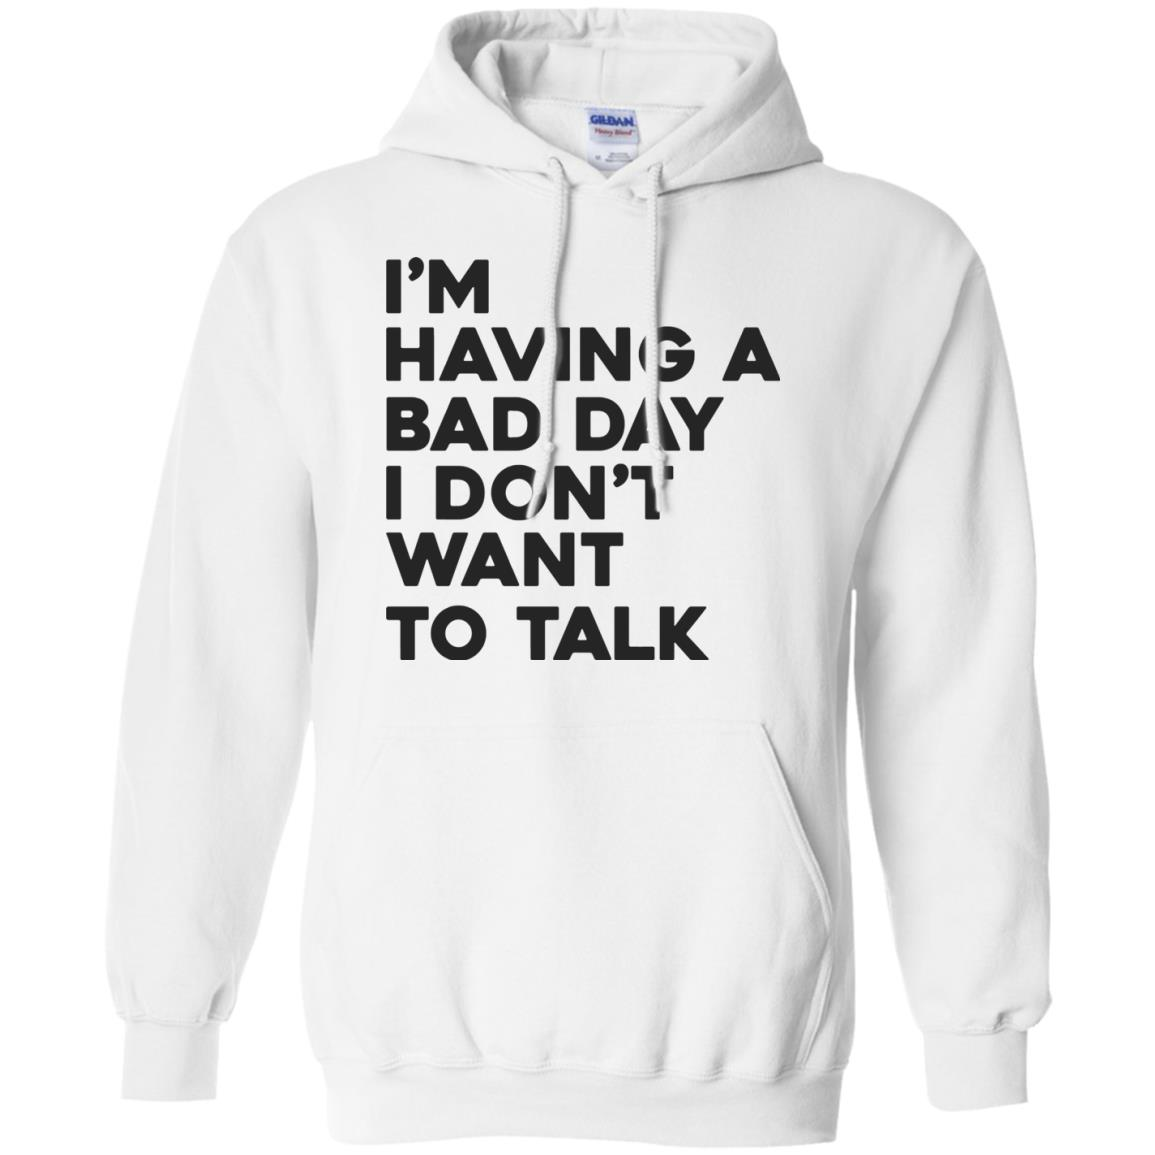 image 239px I'm having a bad day I don't want to talk t shirt, hoodies, tank